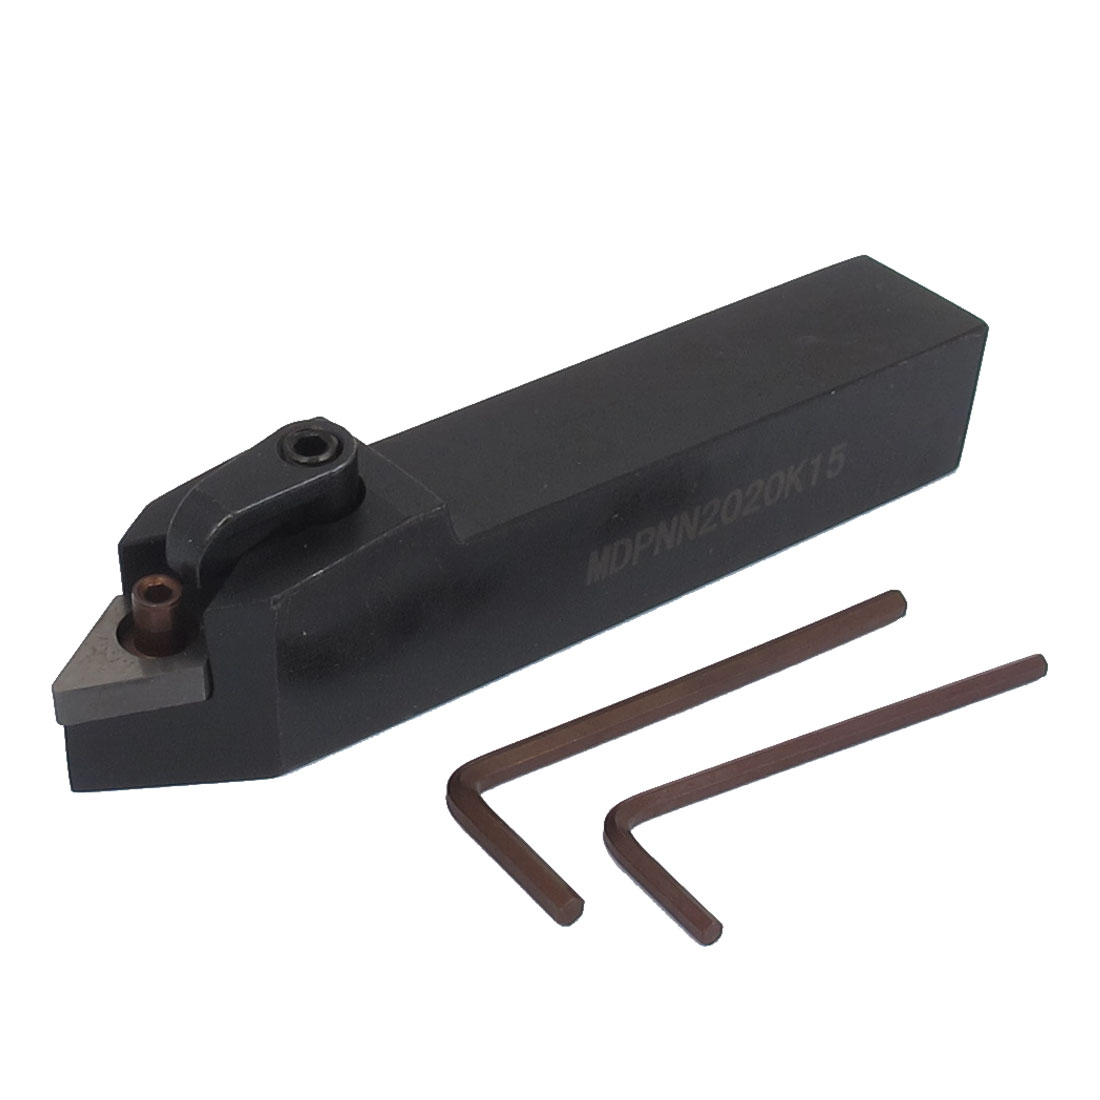 MDPNN2020K15 20mmx20mm Square Shank CNC Lathe External Threading Turning Tool Holder 125mm Long